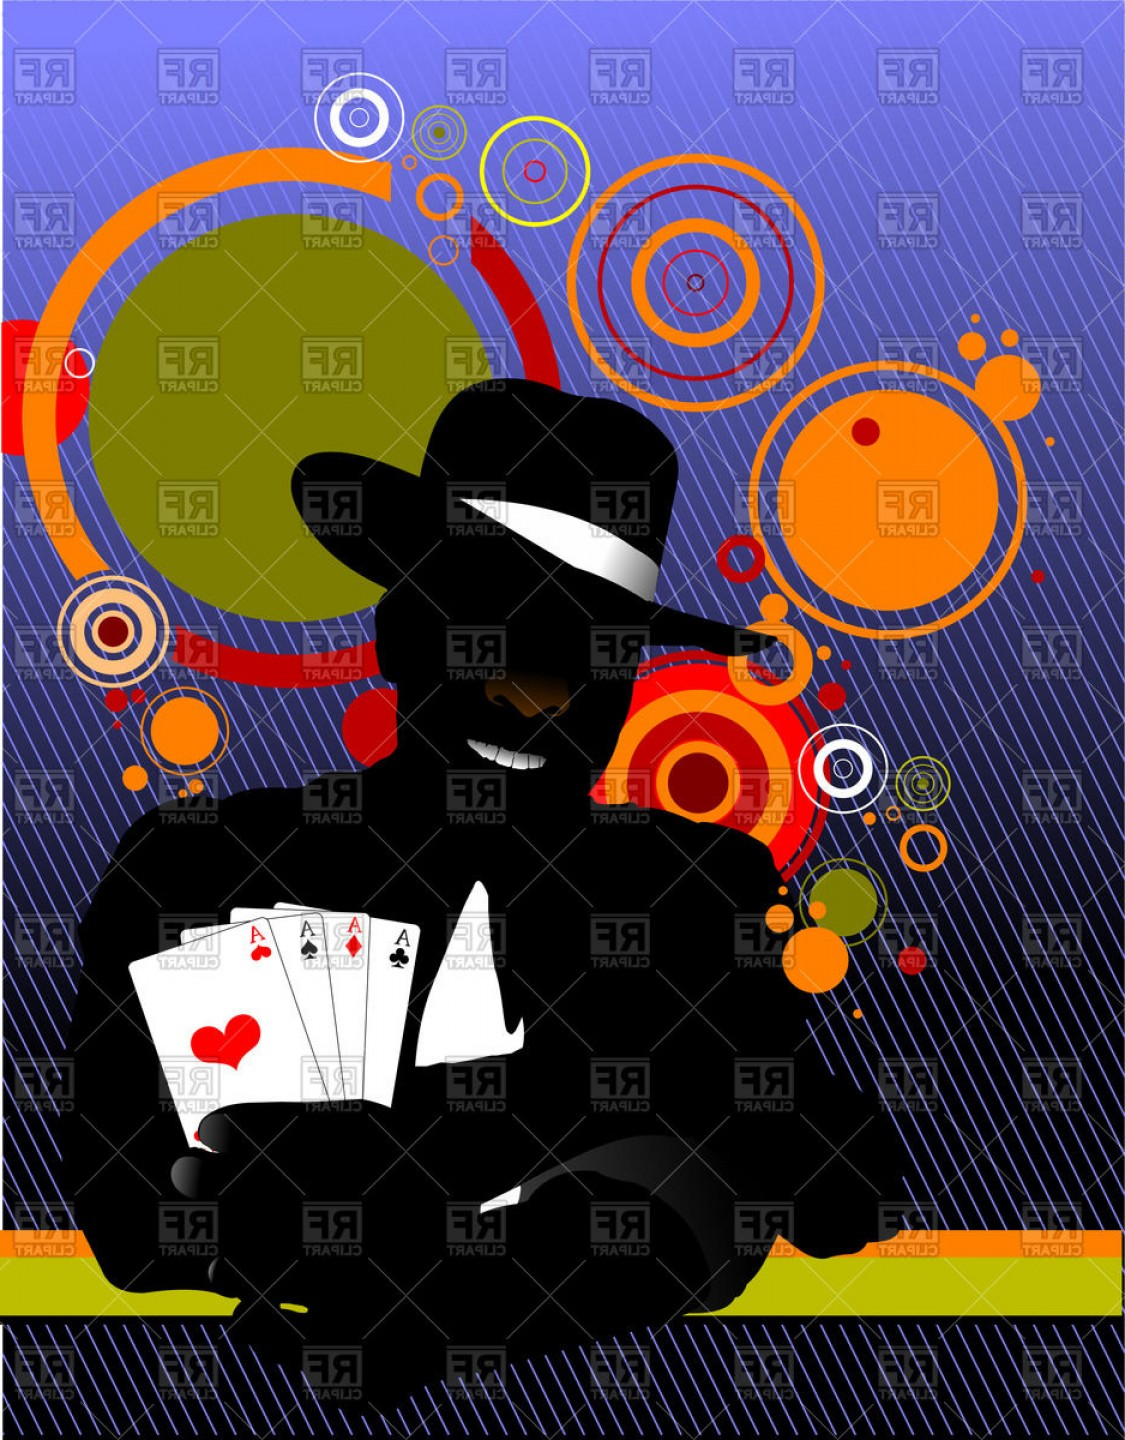 Gambler Vector Art Images: Silhouette Of Man In Hat With Playing Cards In Hand Gambler Vector Clipart